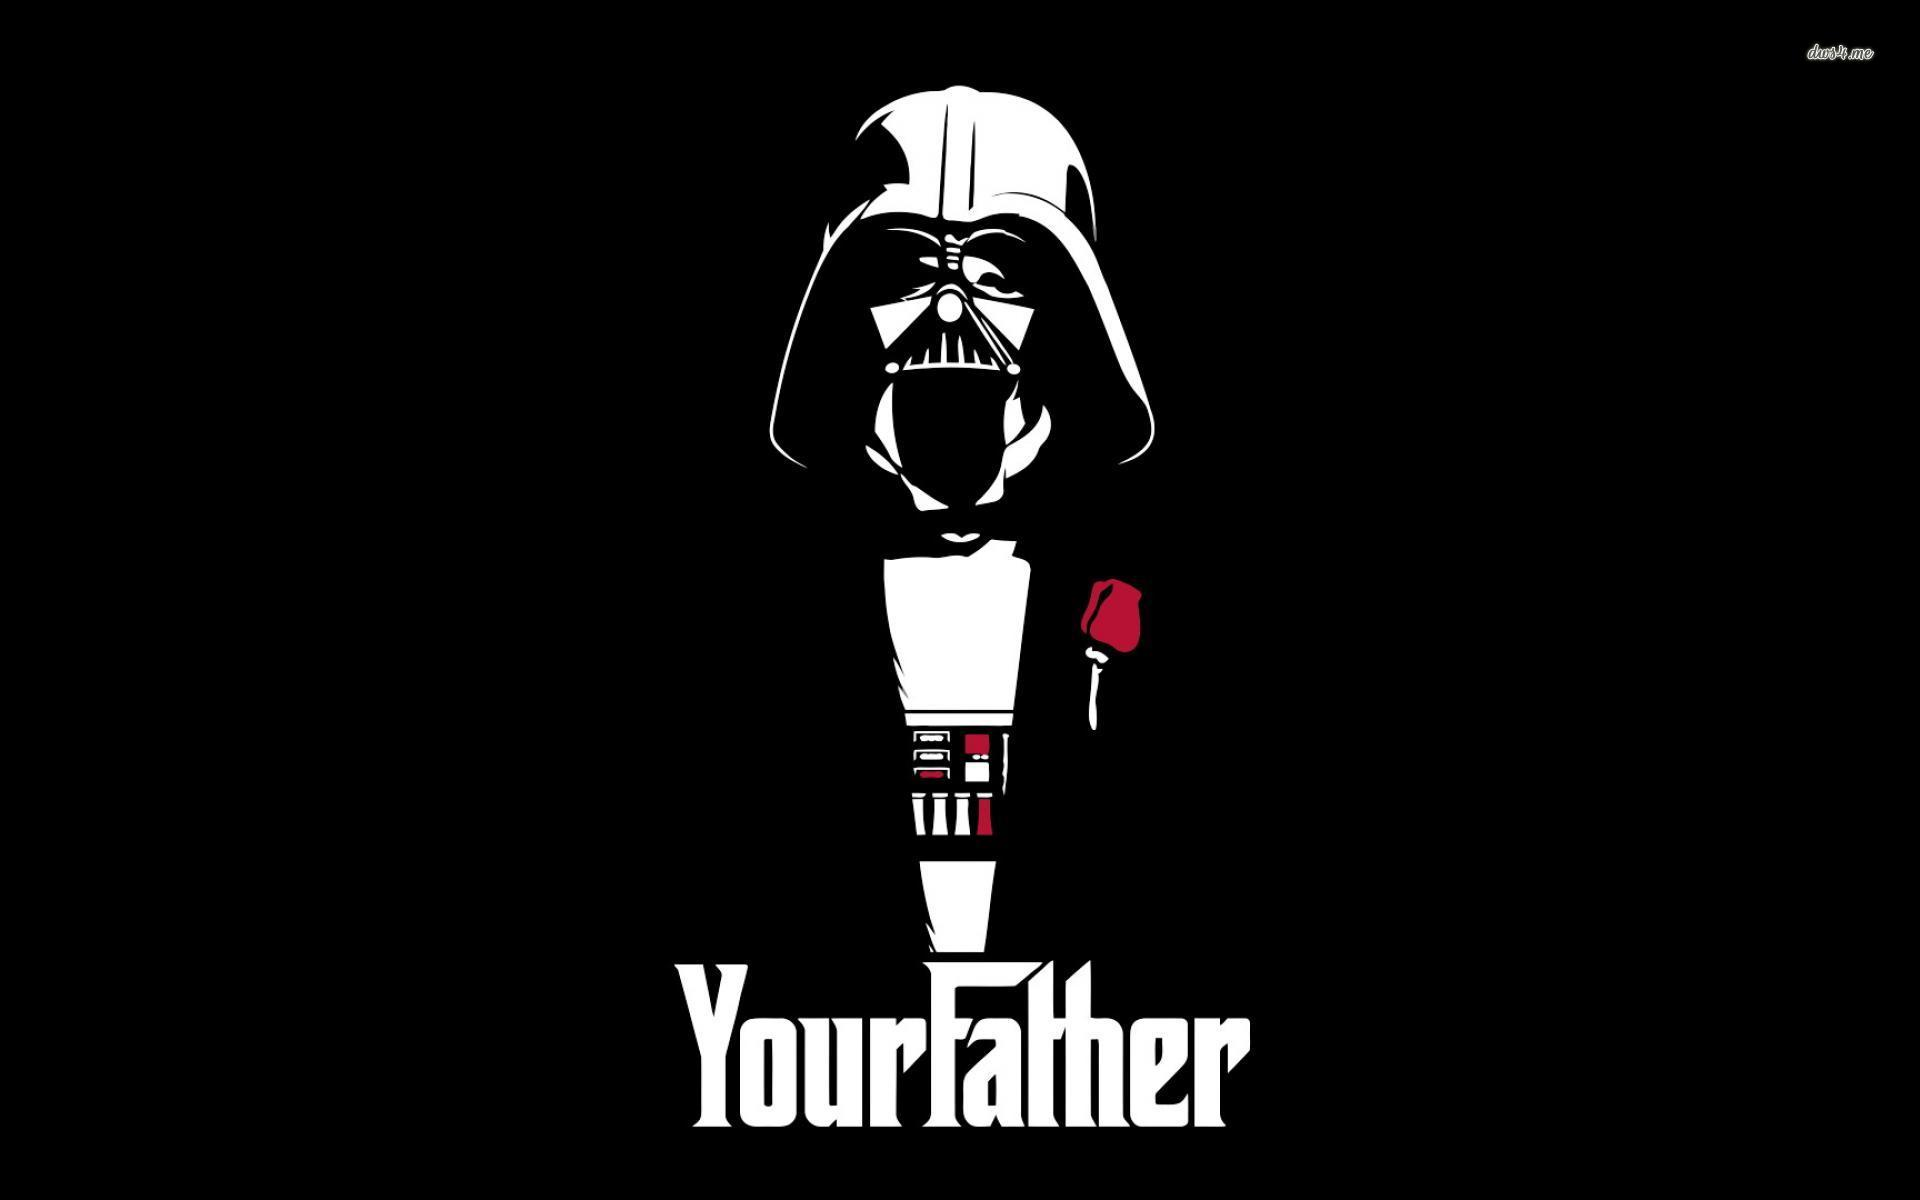 ... Darth Vader Godfather crossover wallpaper 1920x1200 ...